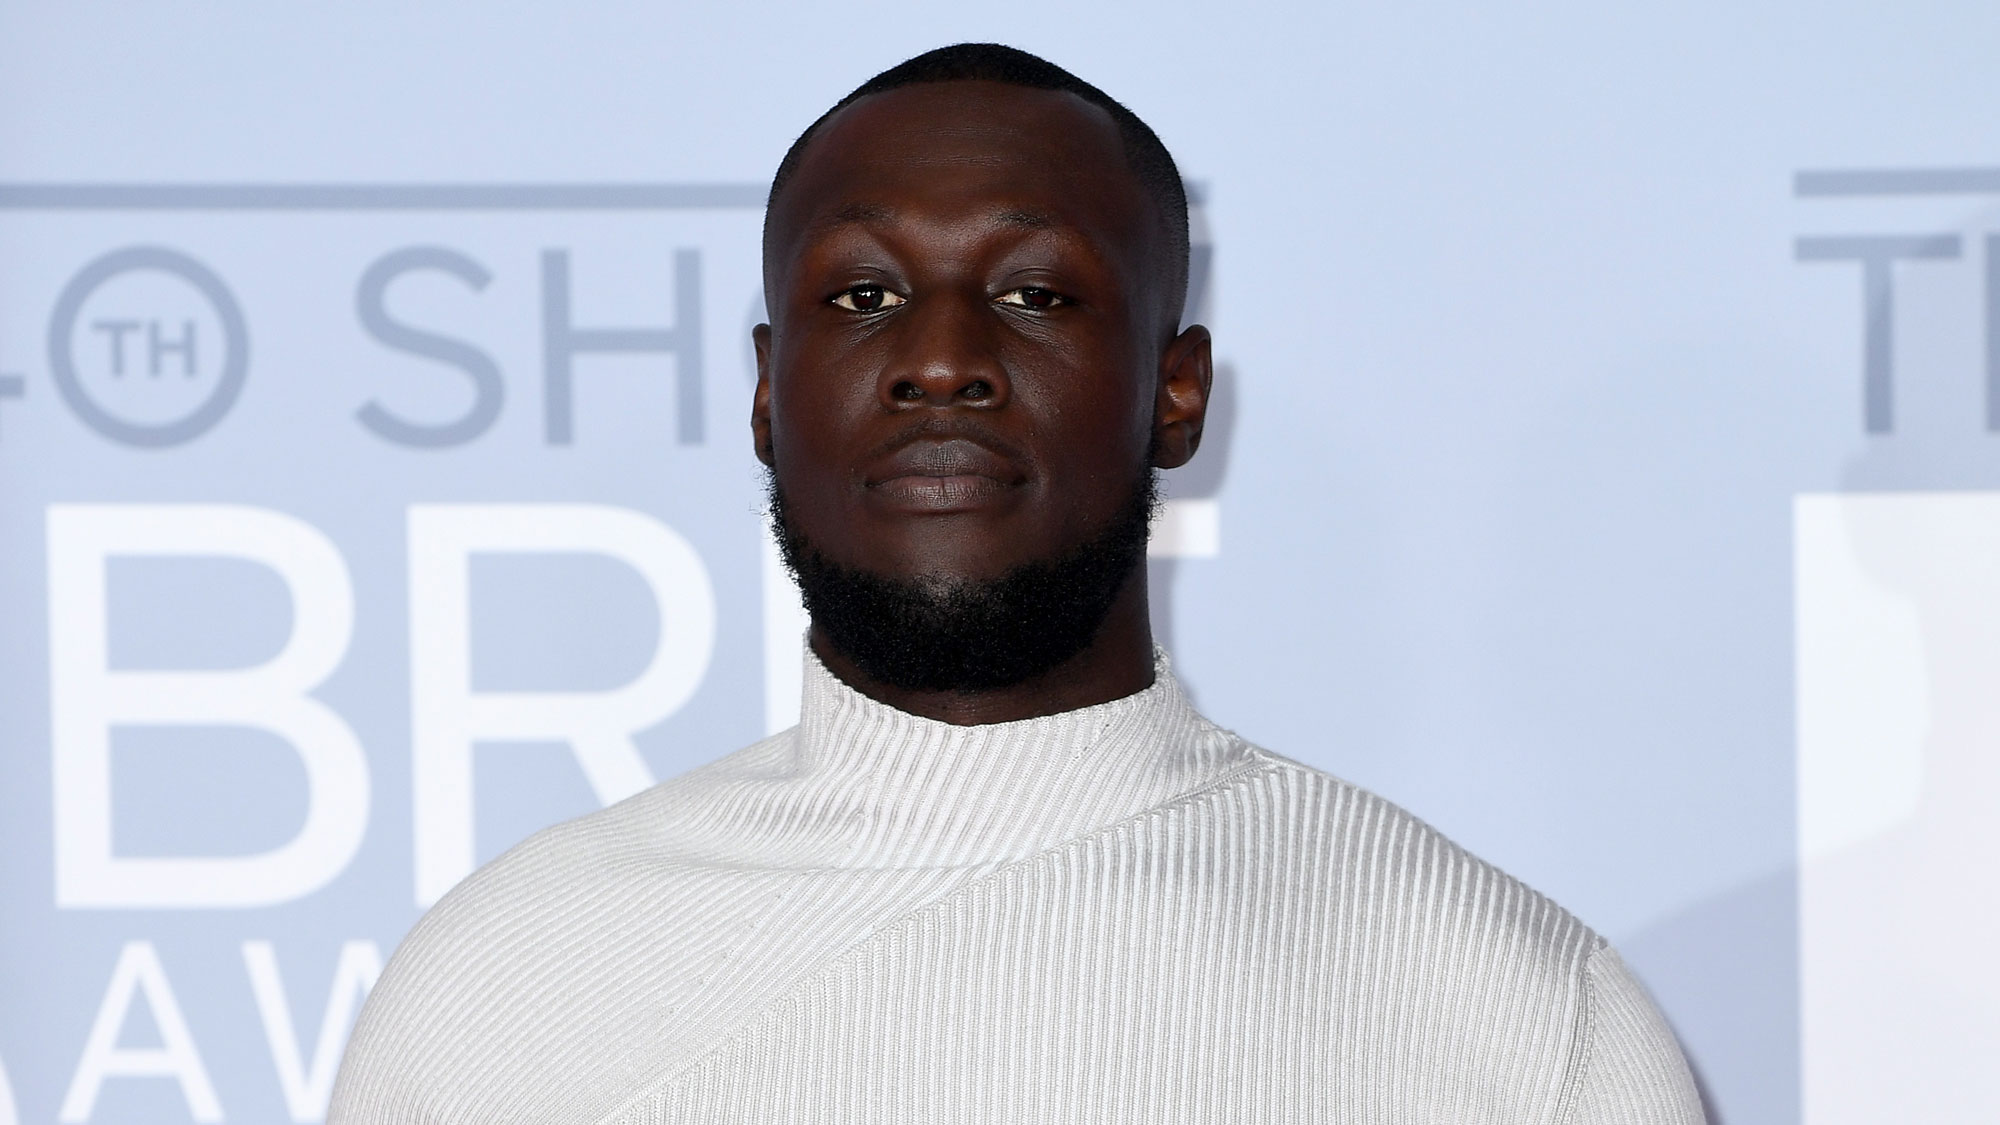 Just in: Stormzy's deleted all of his social media accounts